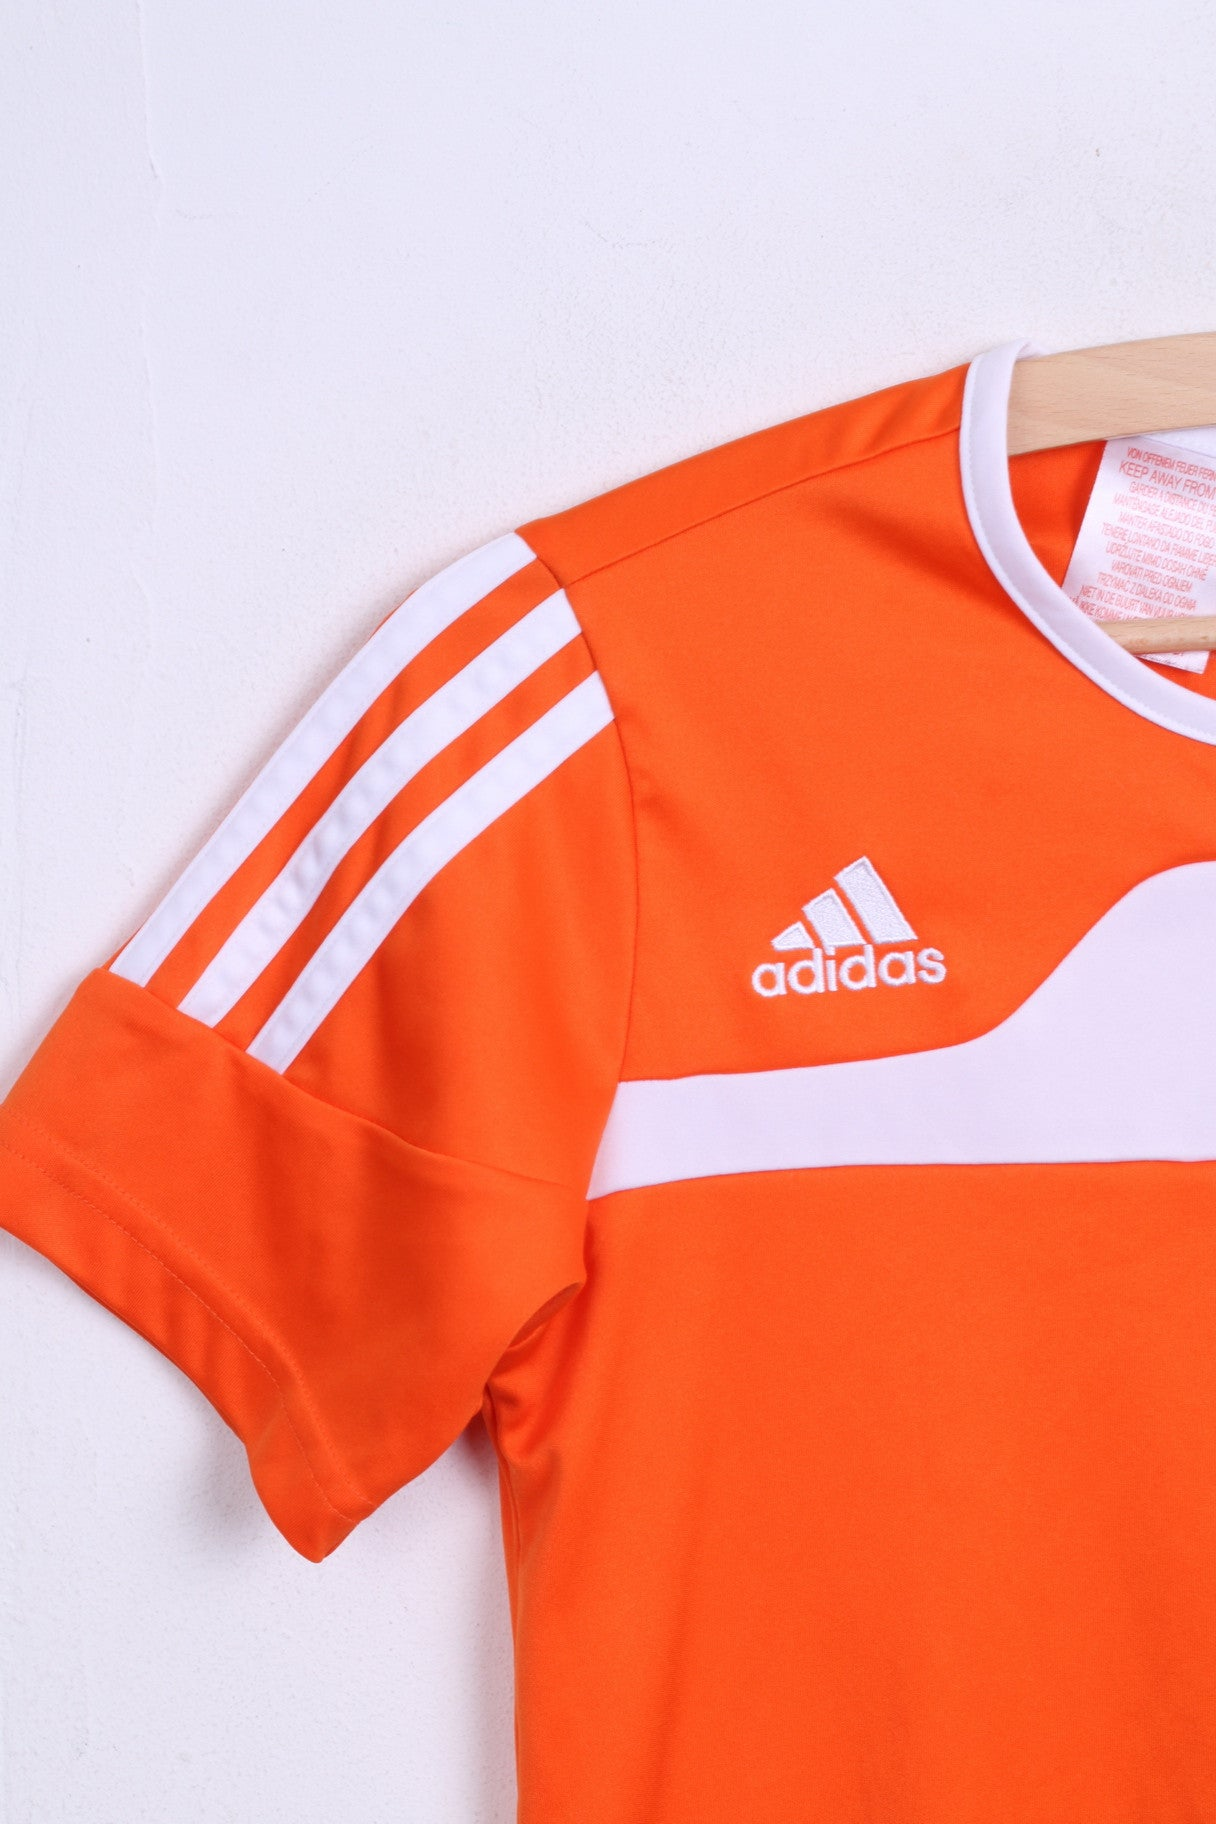 Football Xxs Afc Womens Orange Club Adidas Sport Shirt City Swansea mnN8POyv0w